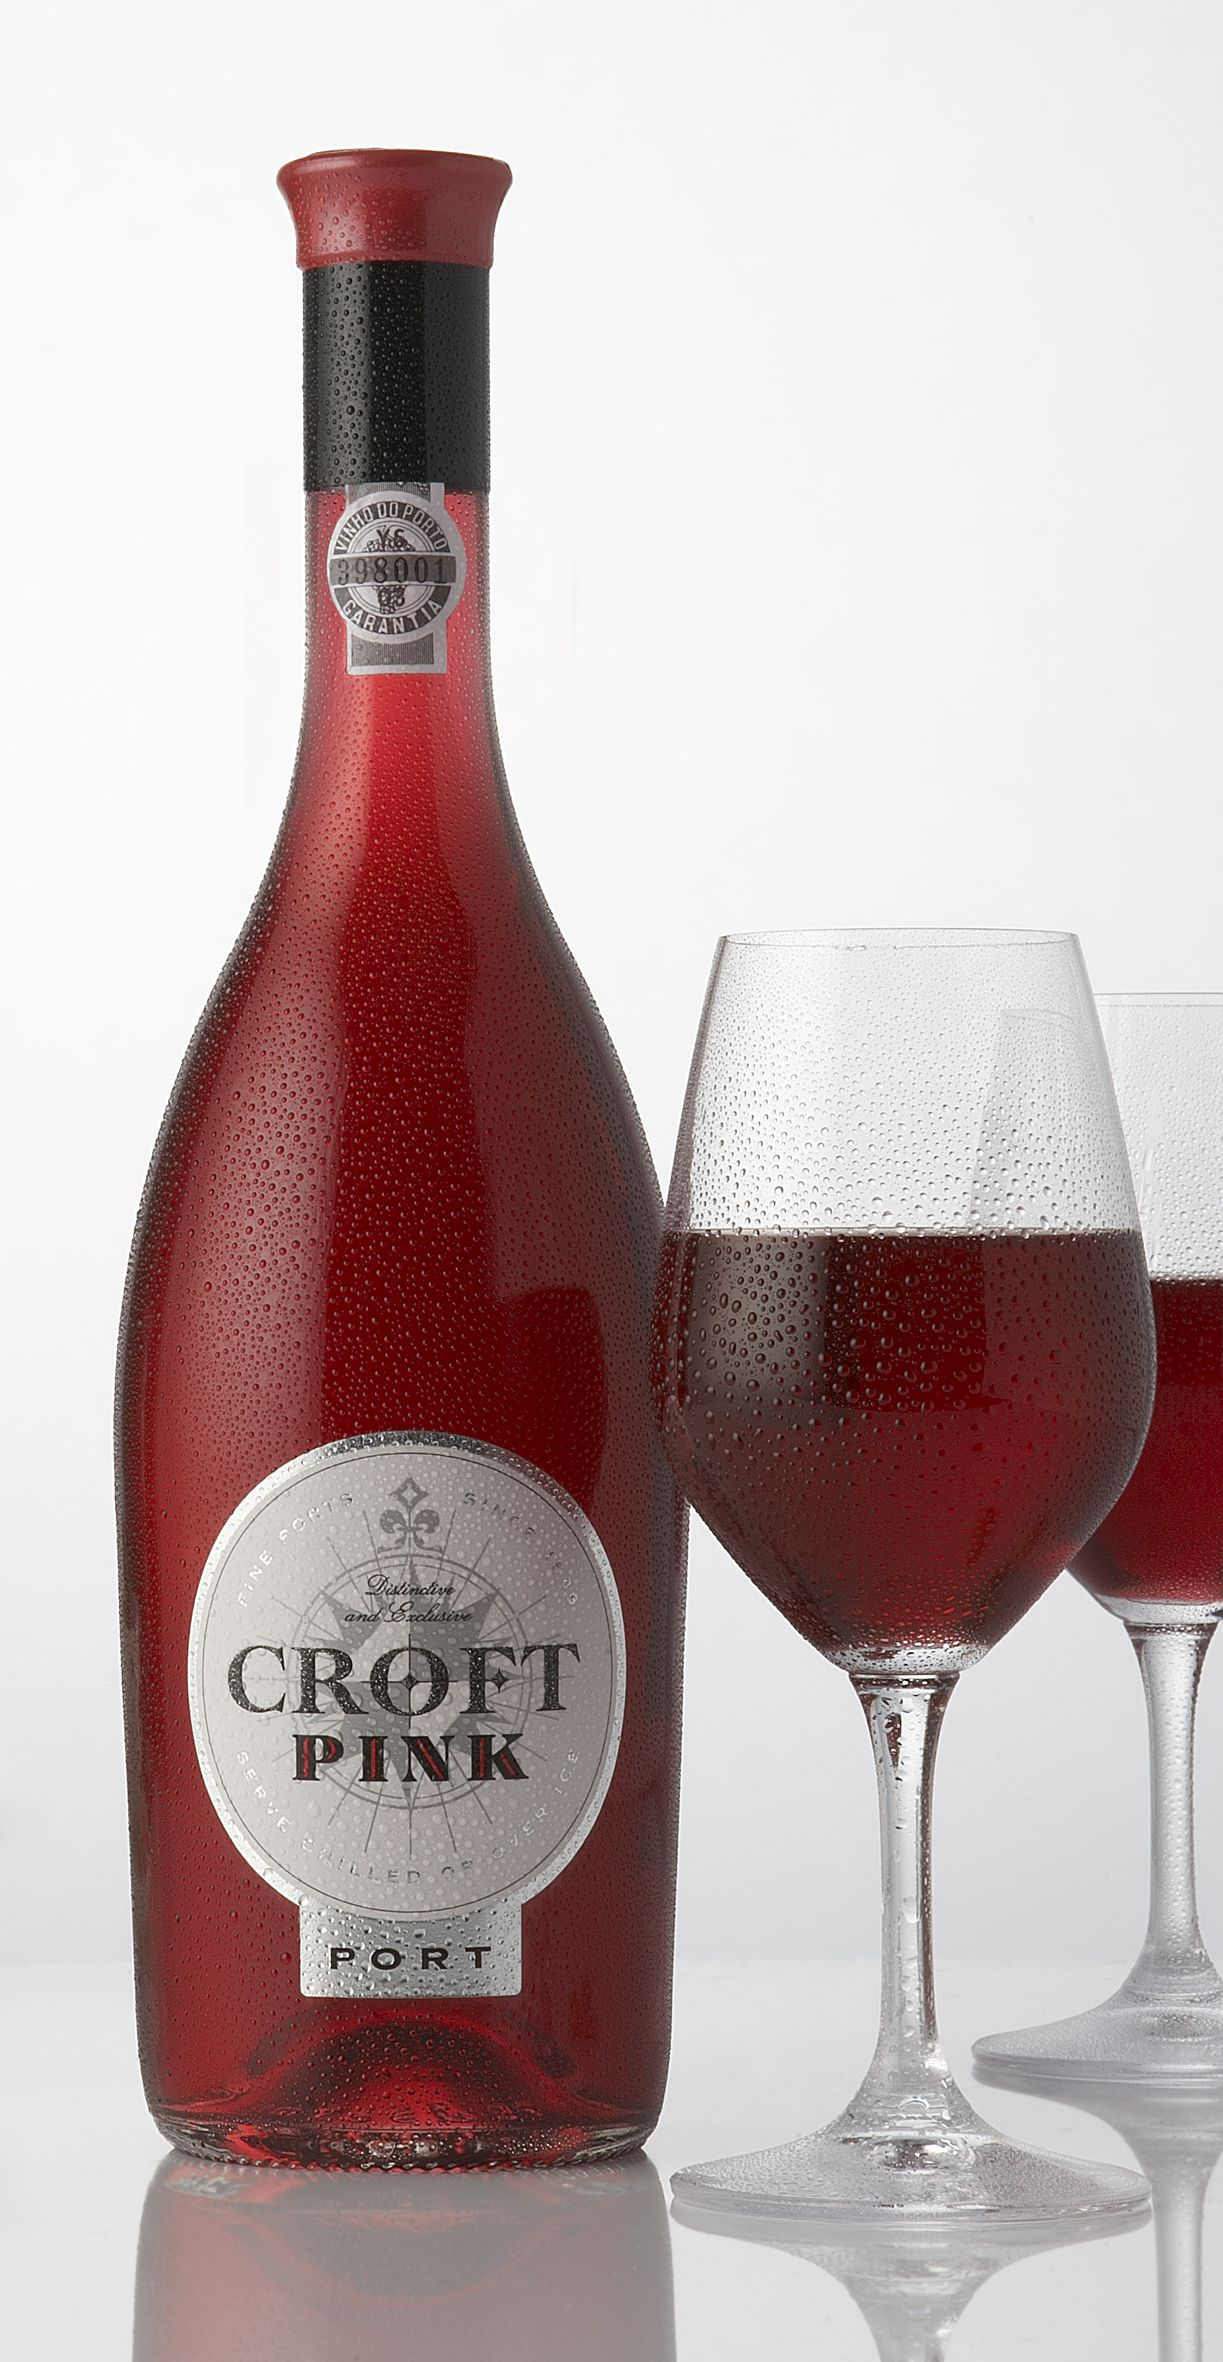 Croft Pink The World S First Pink Port Harpers Design Awards 2009 Fortified Wine Design Of The Year Trophy Th Wine Label Design Wine Packaging Wine Design